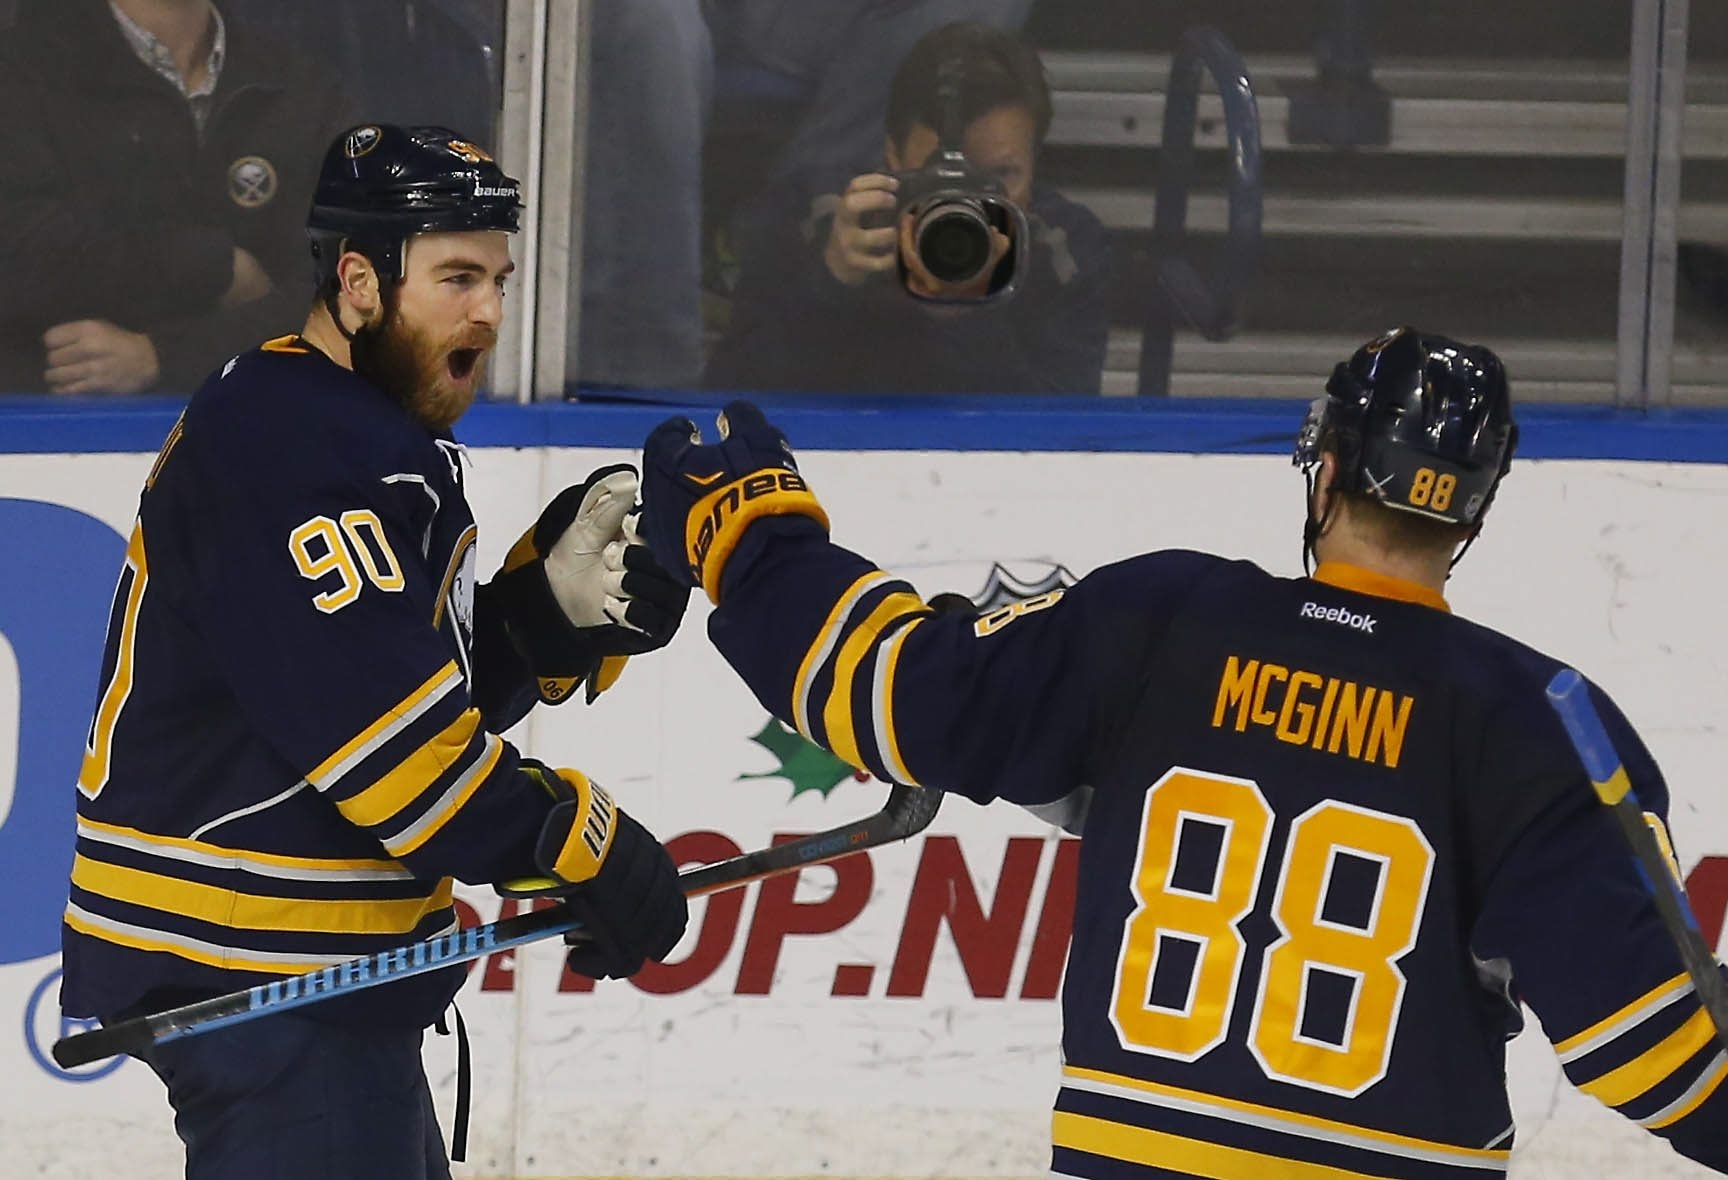 Ryan O'Reilly celebrates with Jamie McGinn after scoring to give the Sabres a third-period lead over Chicago. The Blackhawks rallied to win in a shootout.